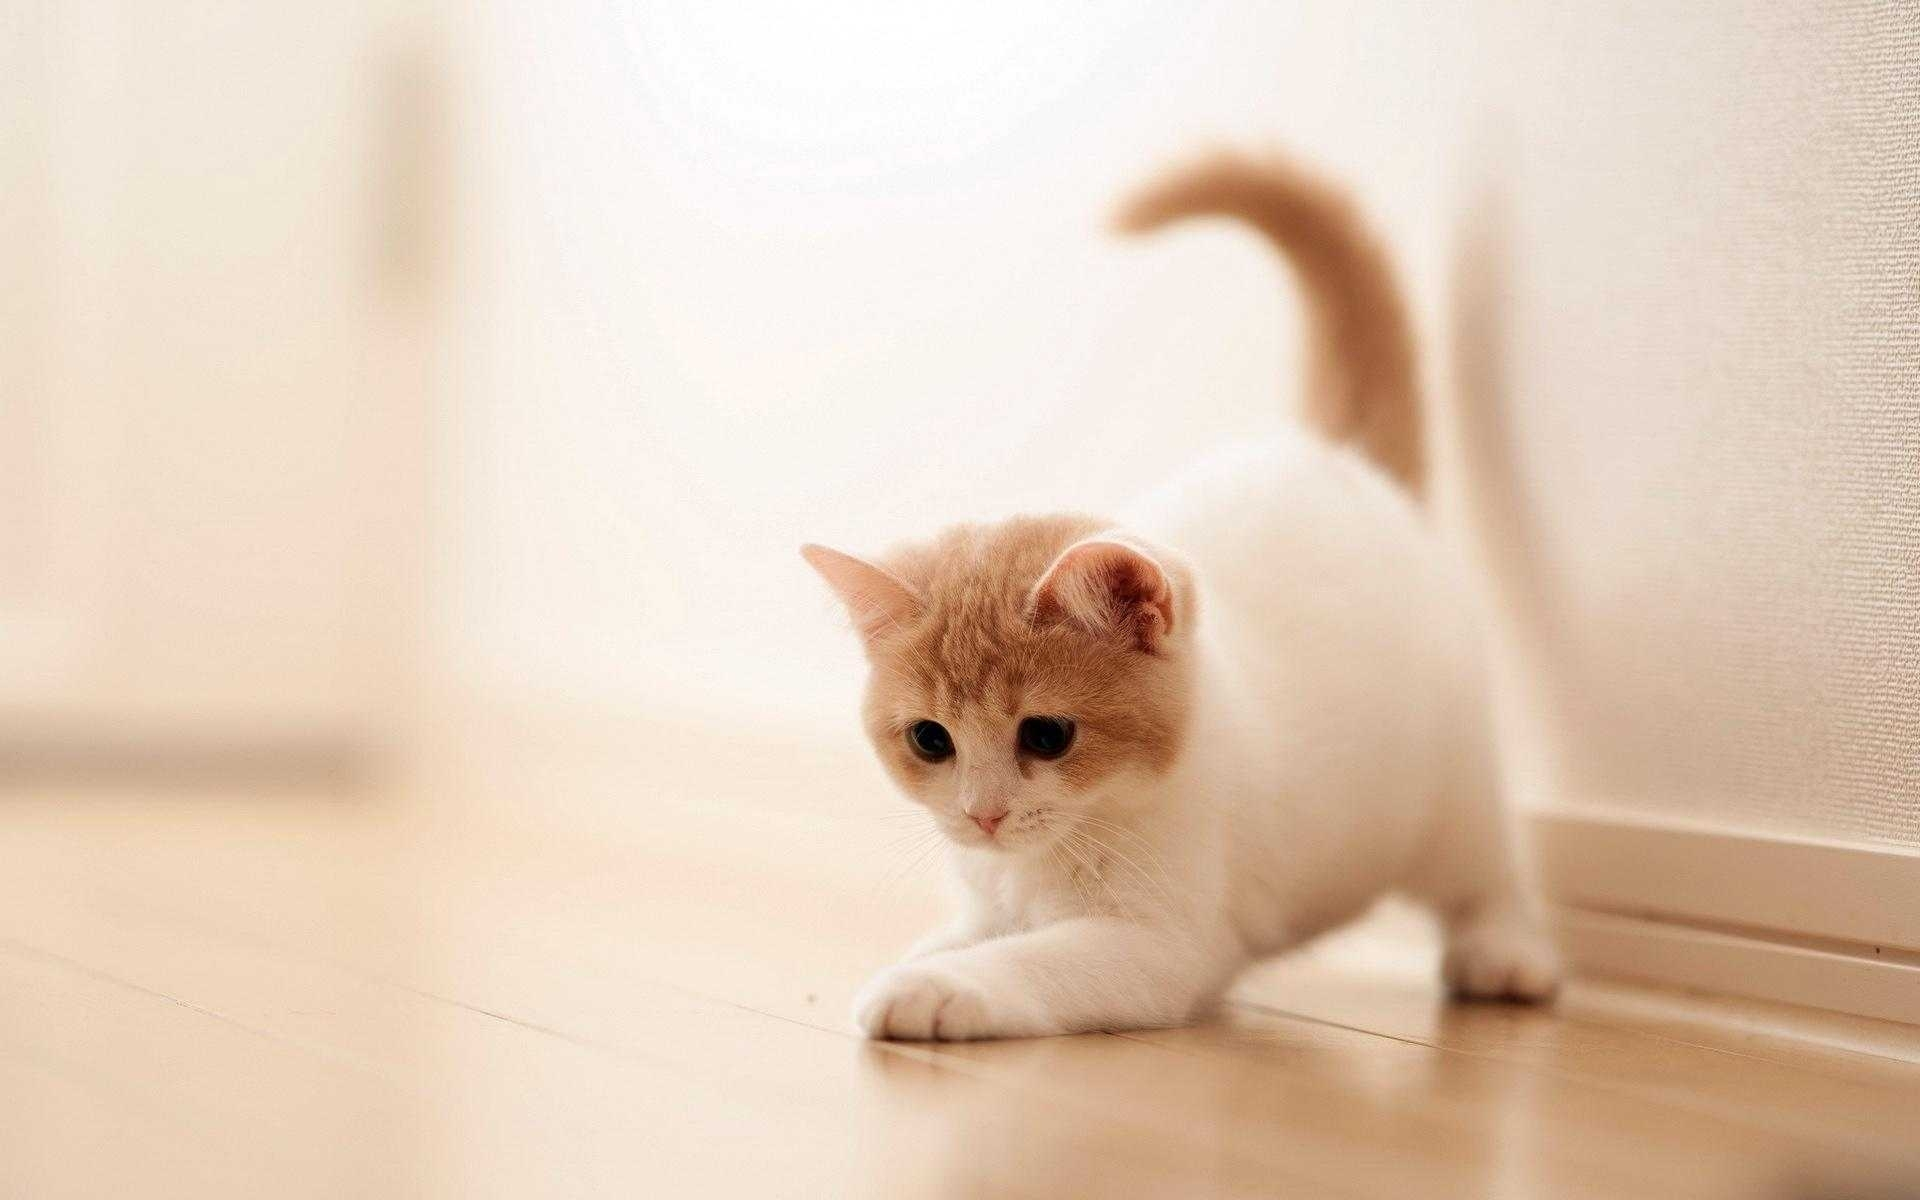 full hd for cute baby cat wallpaper cats high resolution smartphone